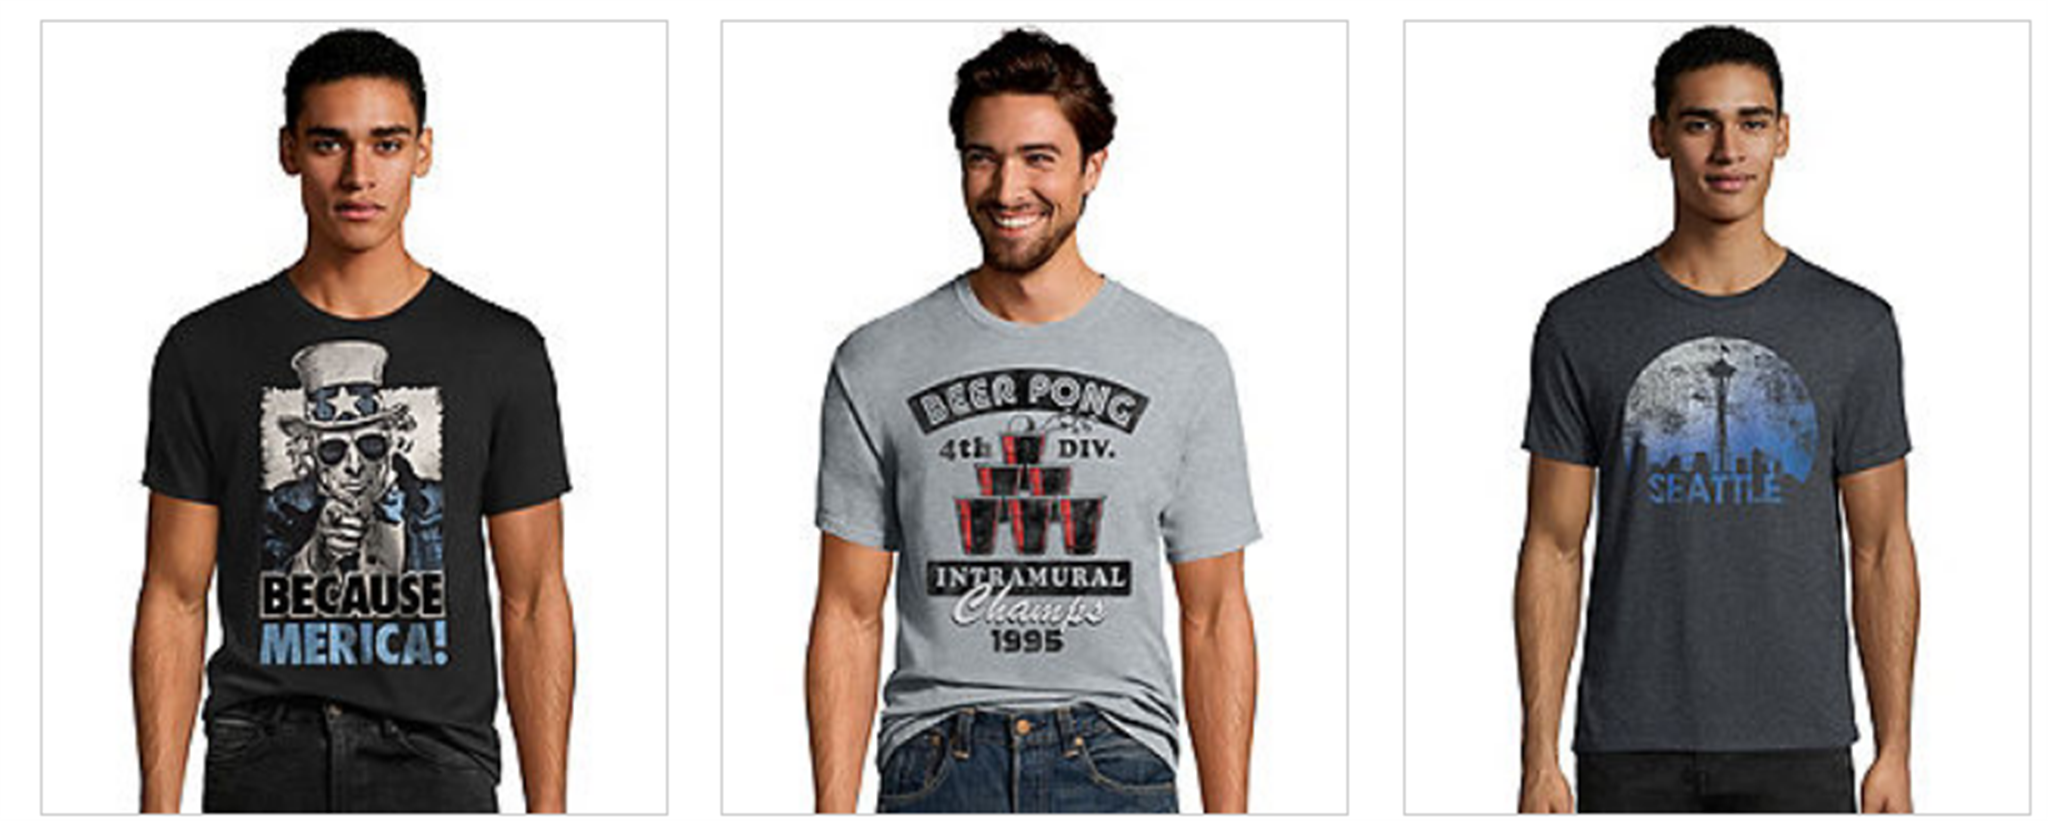 Hanes.com – Extra 30% Off Clearance Items + Free Shipping! Men's Tees Only $2.79 Shipped!